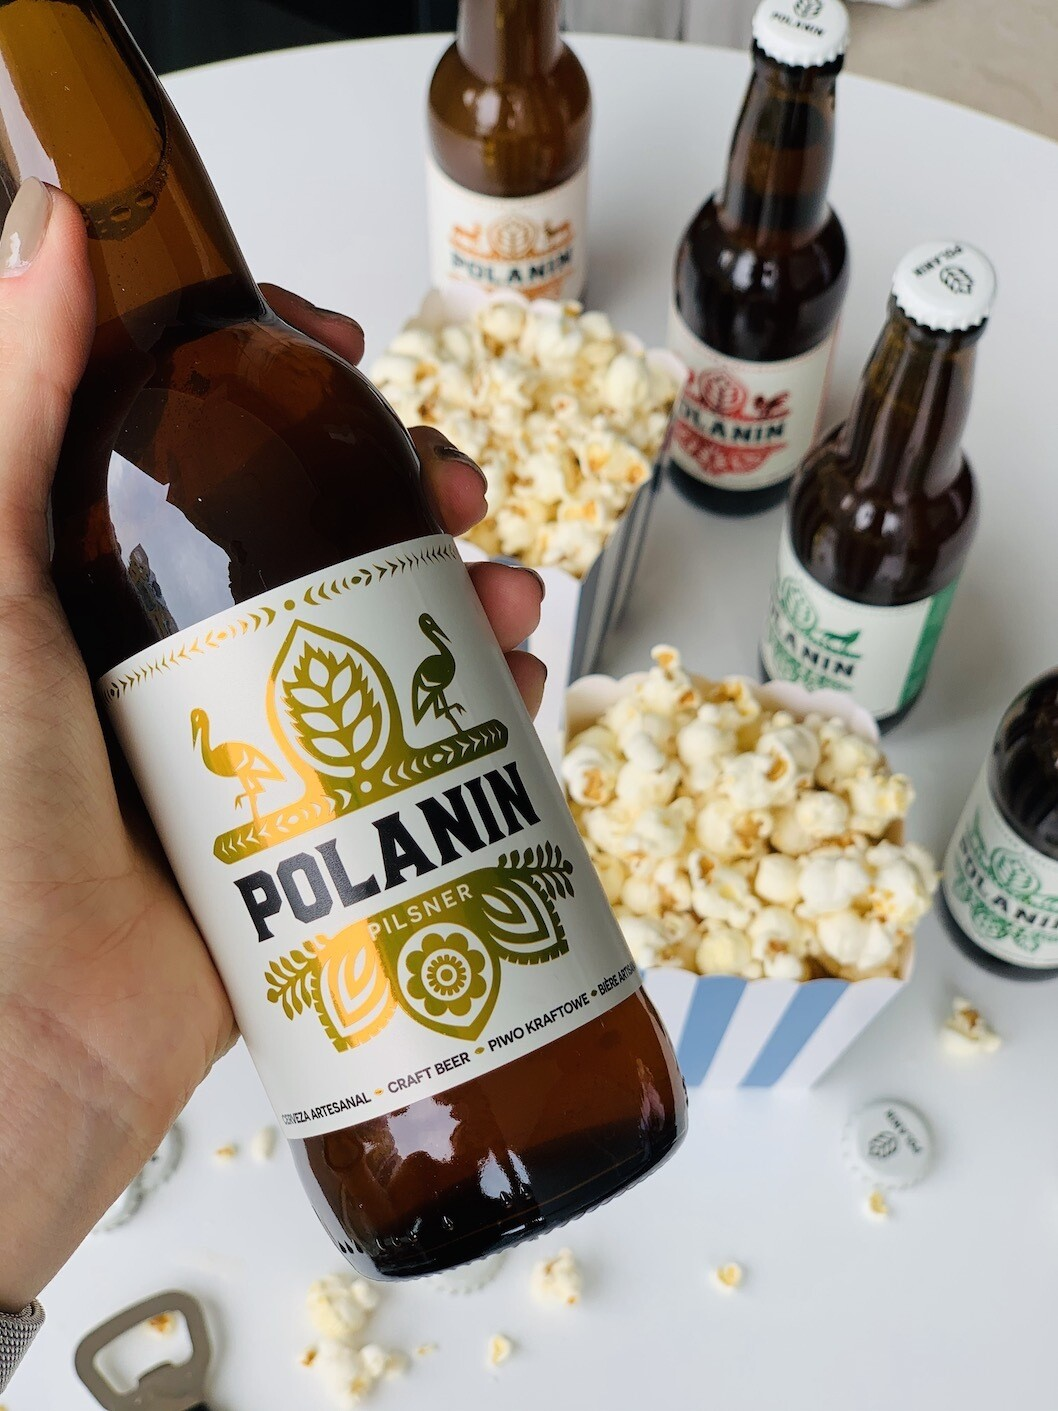 Polanin Pilsner Case - 24 bottles x 330ml